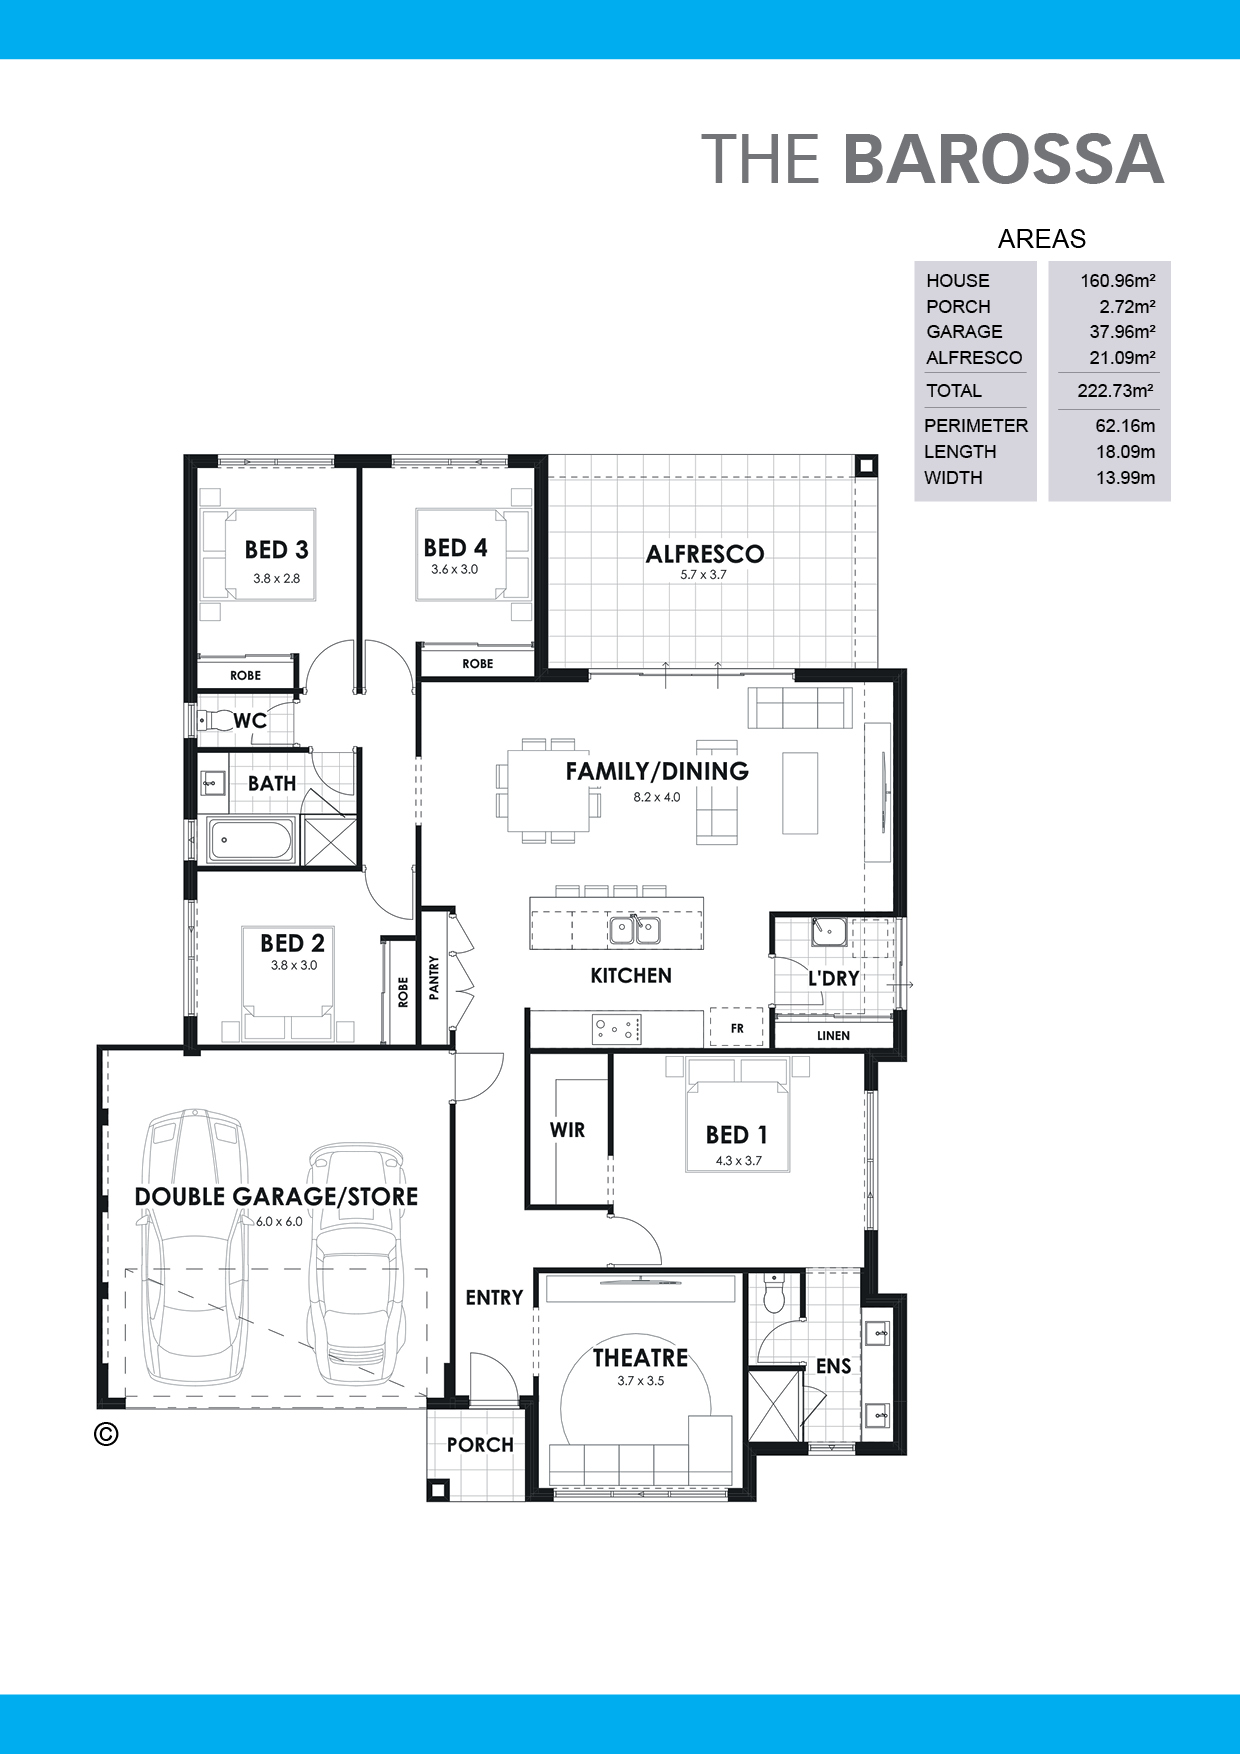 The Barossa Floorplan